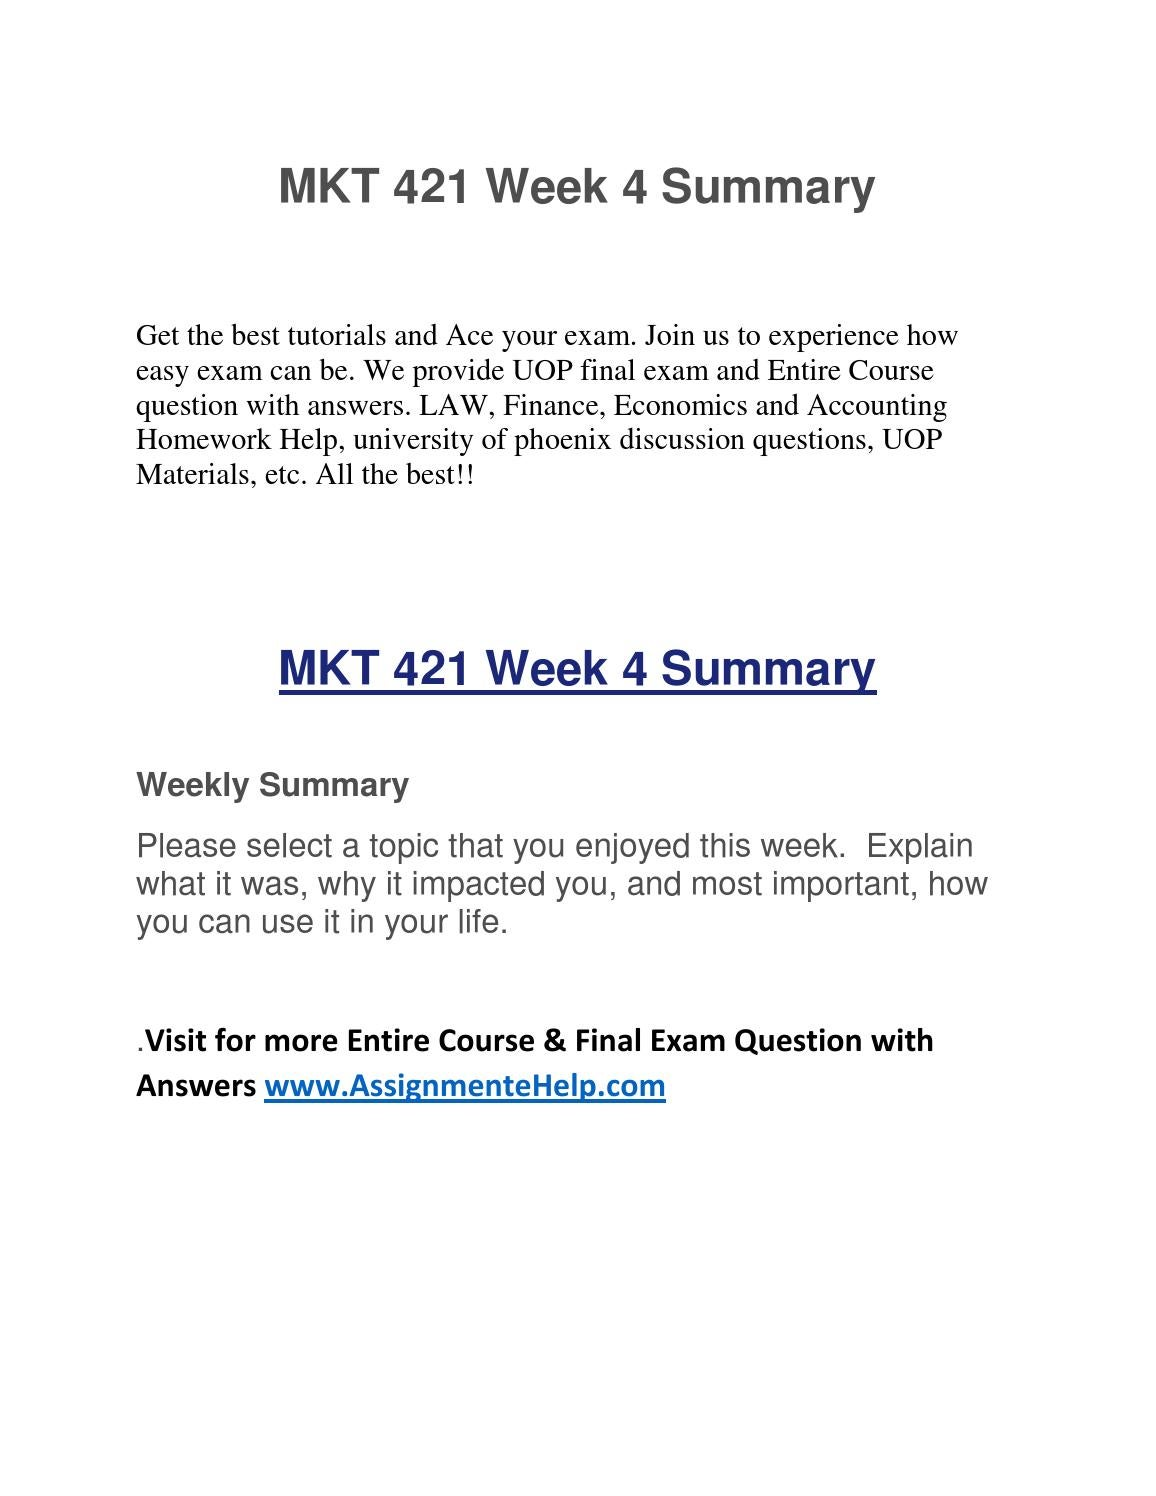 mkt 421 week 2 summary Mkt 421 entire course 1 mkt 421 complete course to download visit: wwwfinalexamguidelinecom week 1 individual assignment, defining marketing discussion questions included weekly summary week 2 individual assignment, marketing mix learning team assignment, marketing plan phase 1.